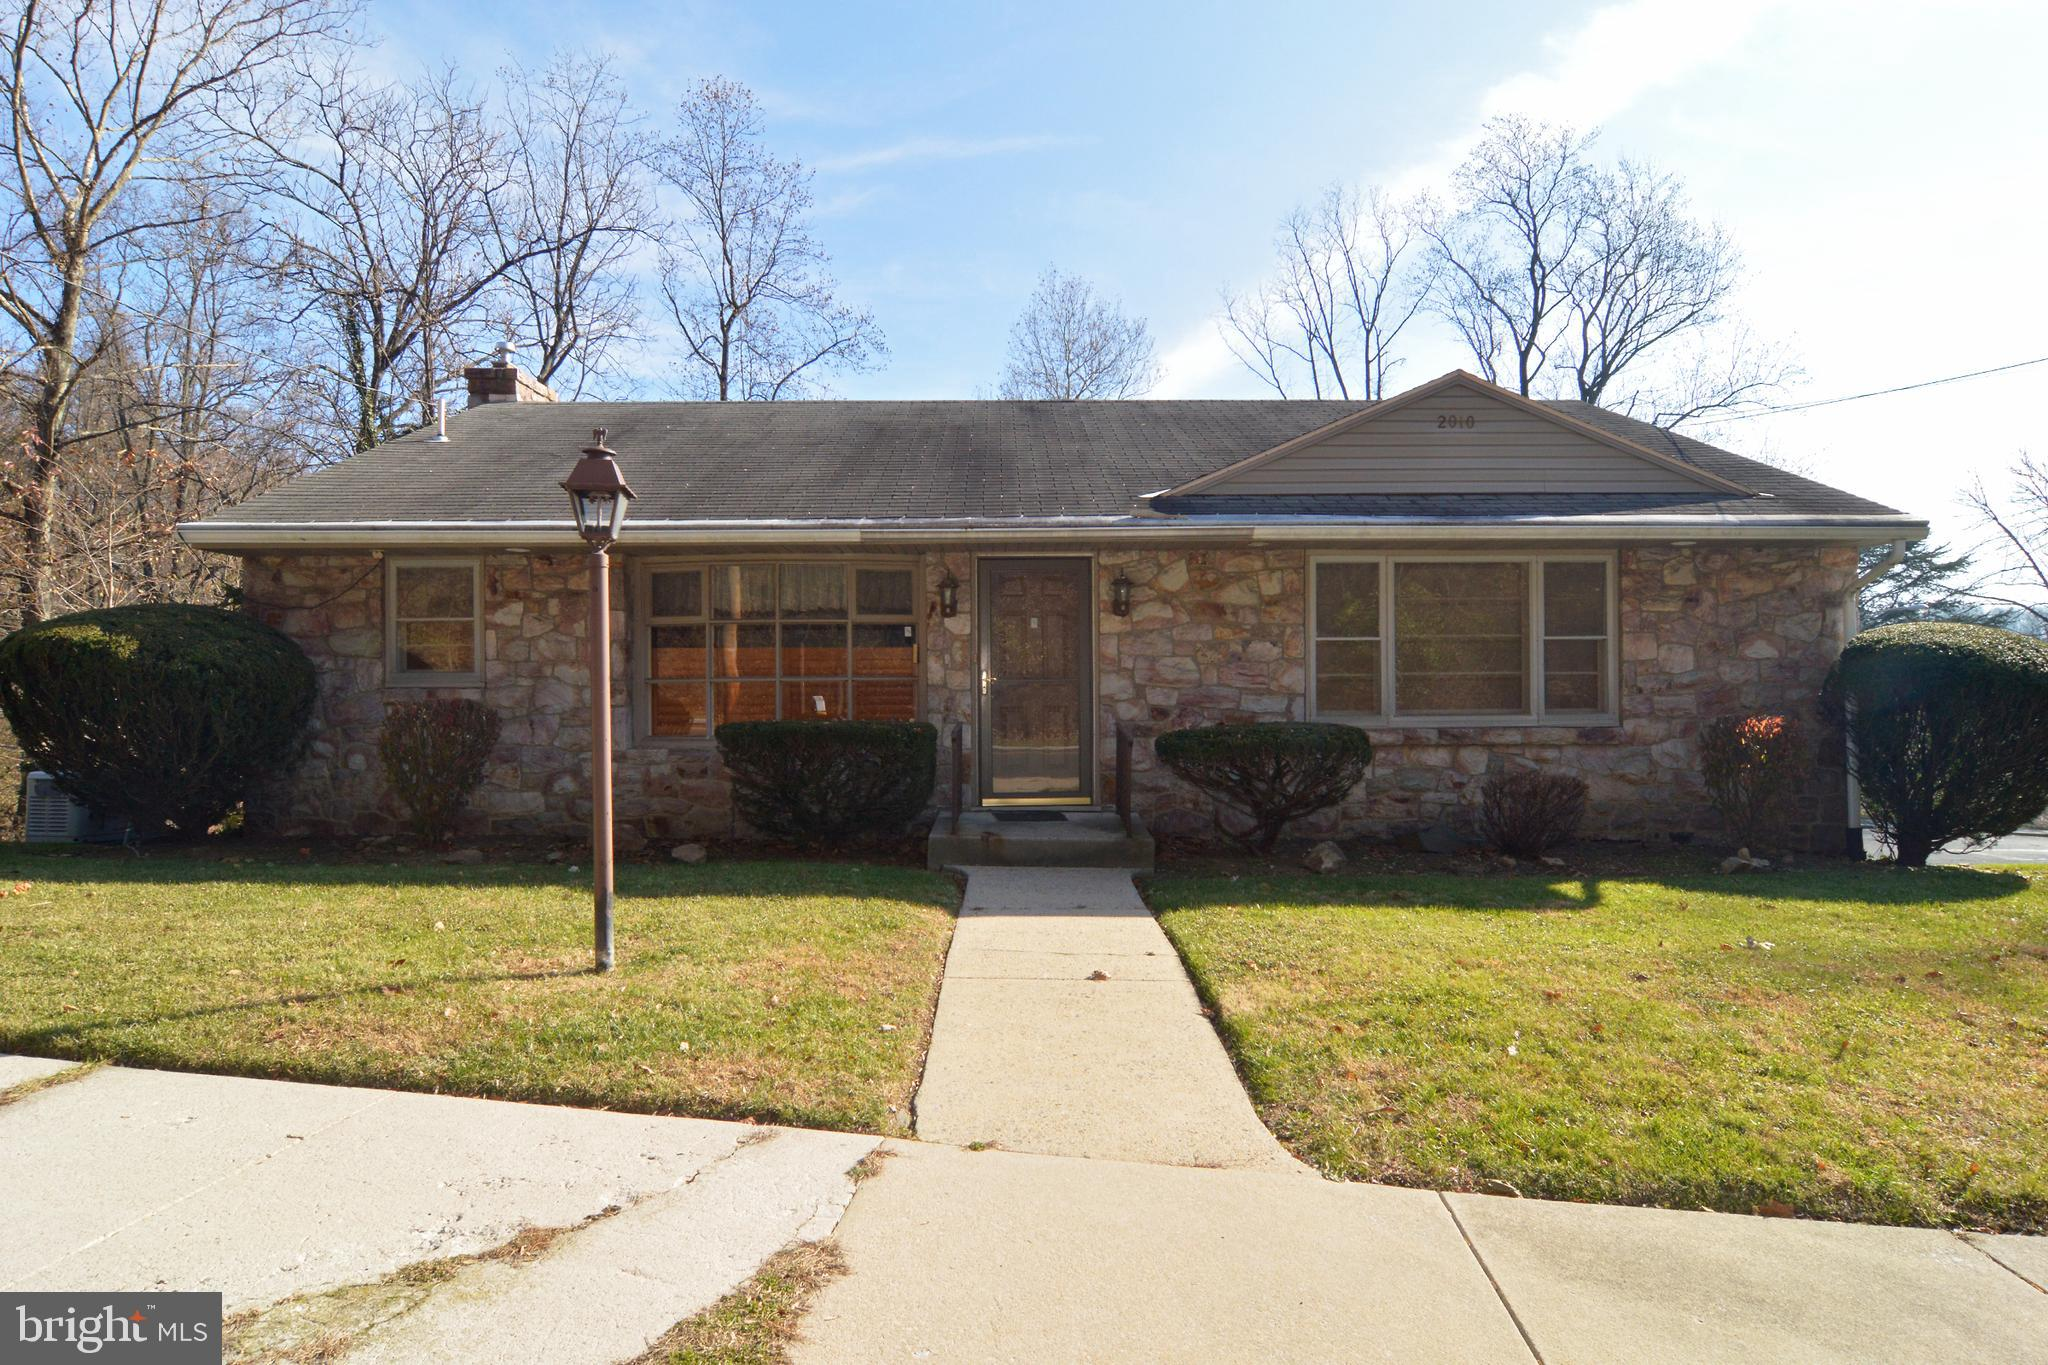 2010 HILL ROAD, READING, PA 19602